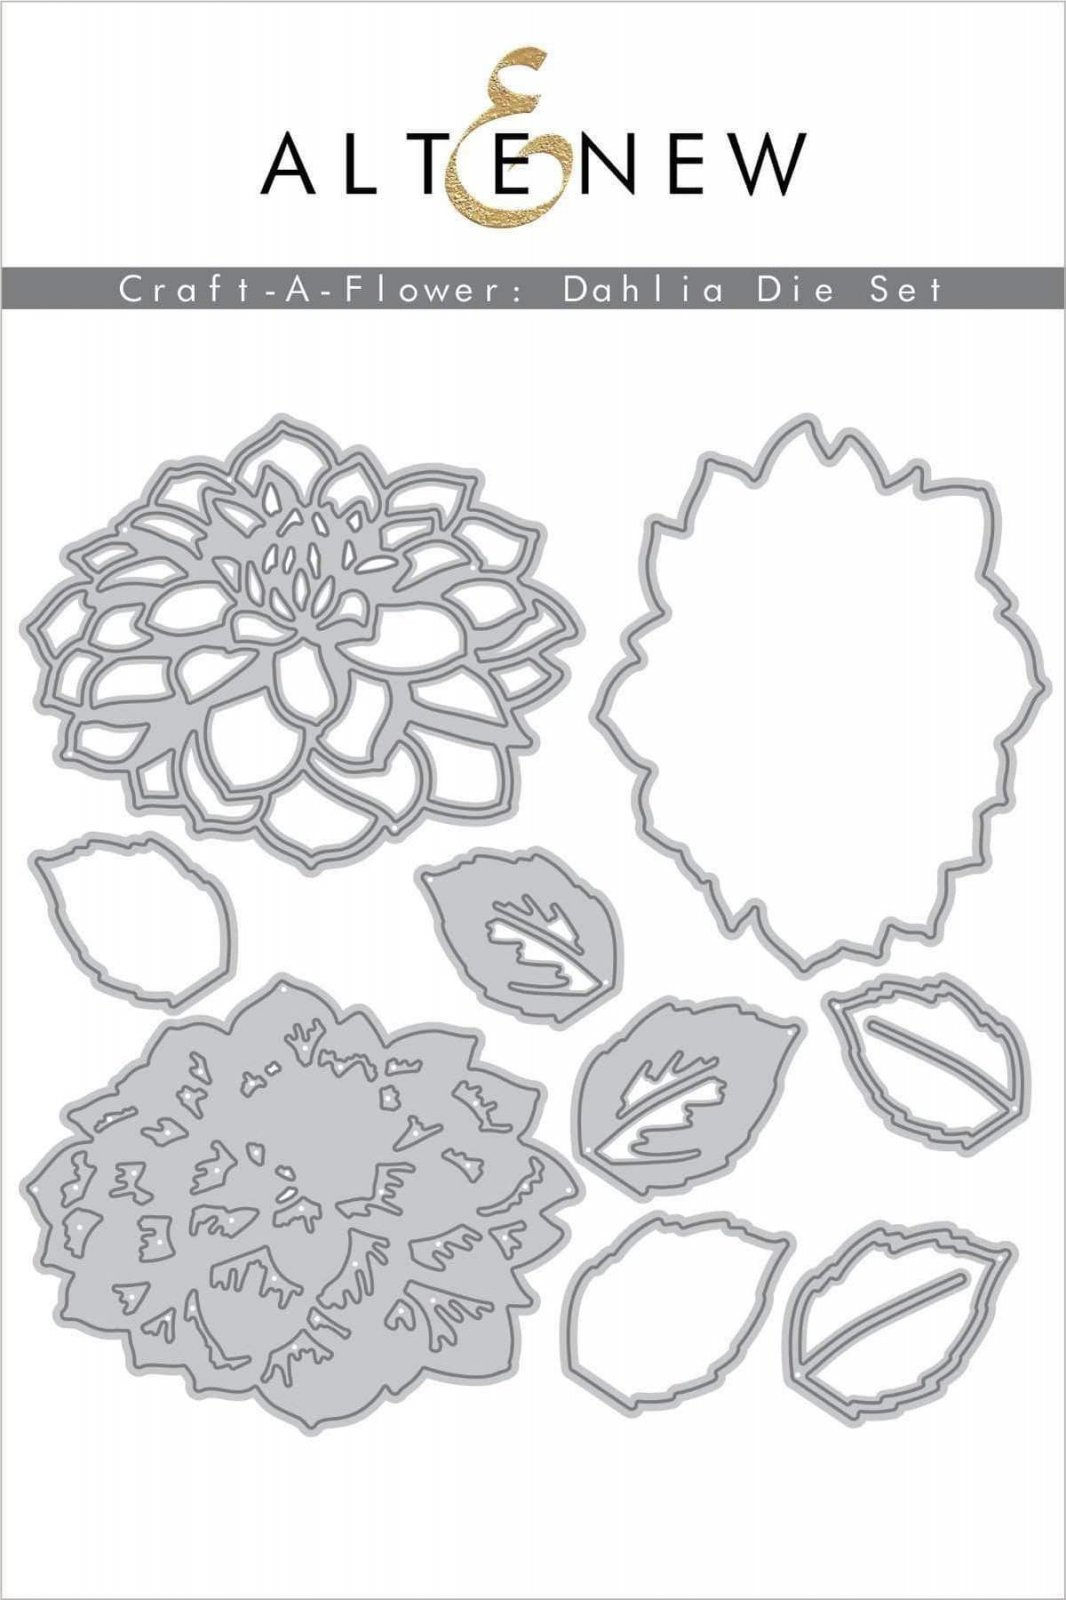 Altenew Craft-a-Flower Dahlia Die Set